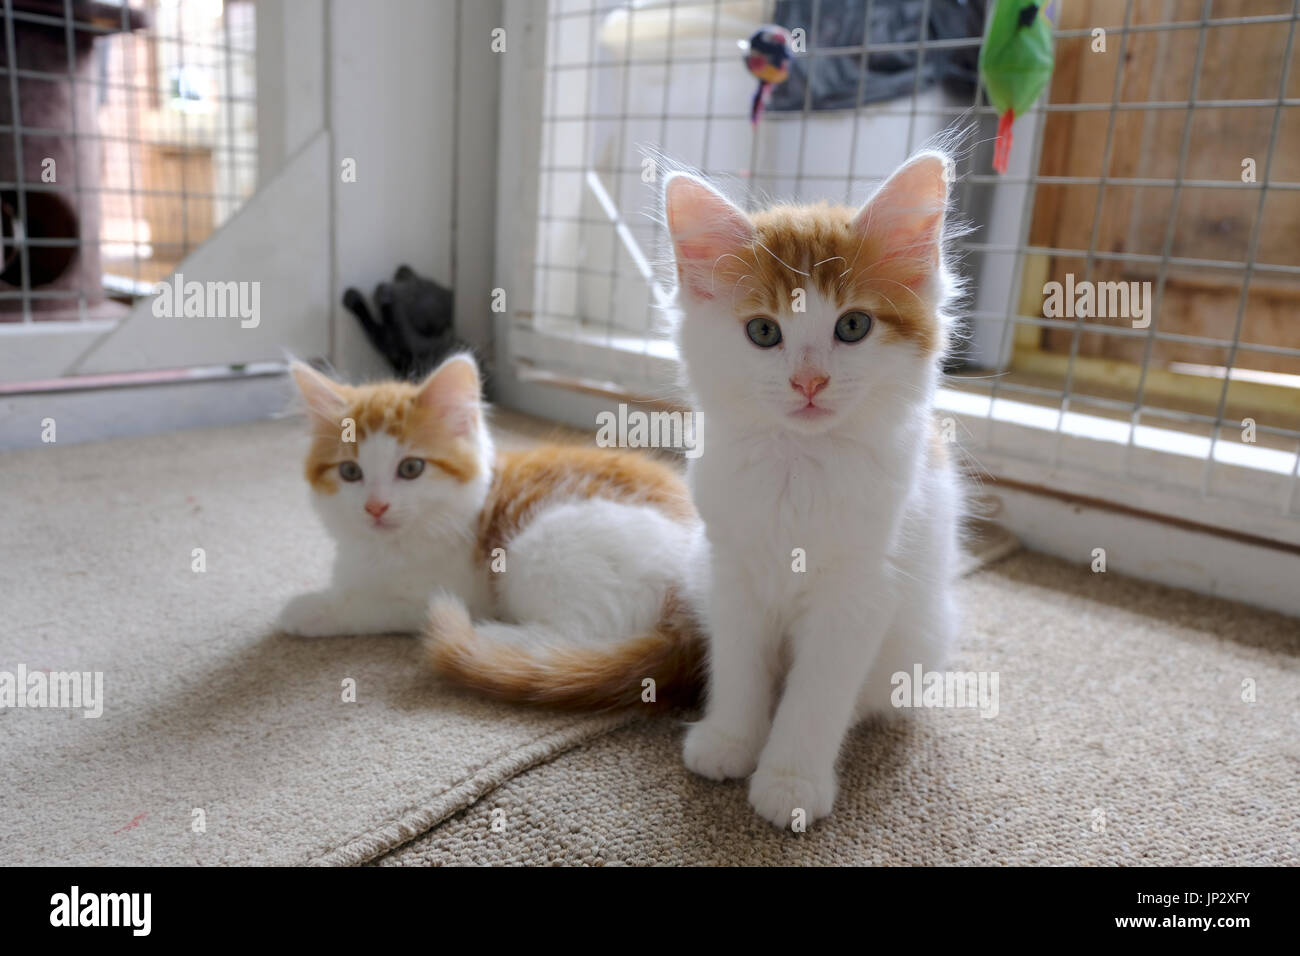 Pair of ginger and white kittens awaiting adoption at a British animal rescue centre - Stock Image